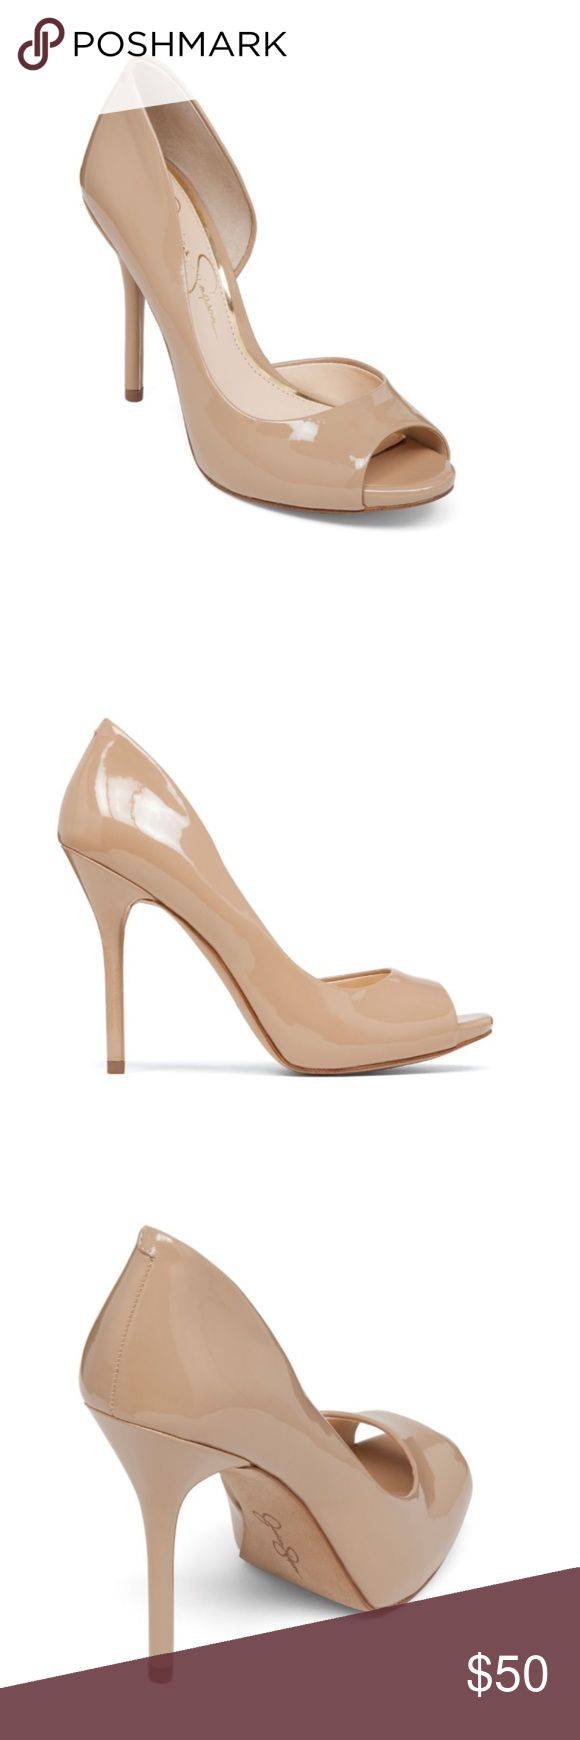 Jessica Simpson Peep toe pumps! Cute nude never worn Jessica Simpson heels. Size 7 1/2.                             Bibi Peep toe pumps Jessica Simpson Shoes Heels